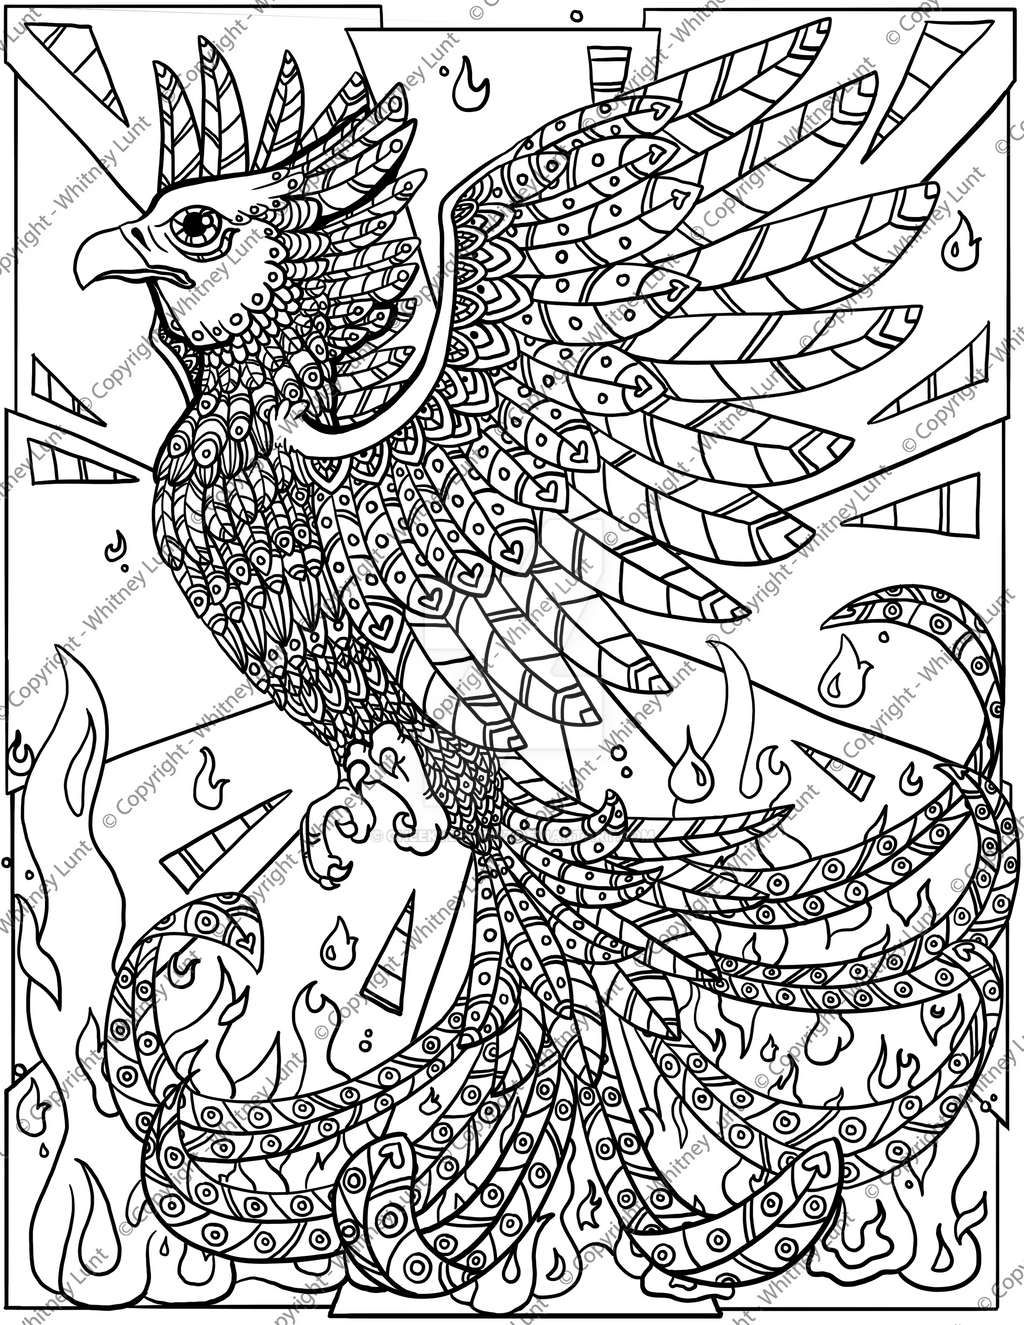 Coloring Pages Phoenix: Phoenix Coloring Page By Cheekydesignz On DeviantArt